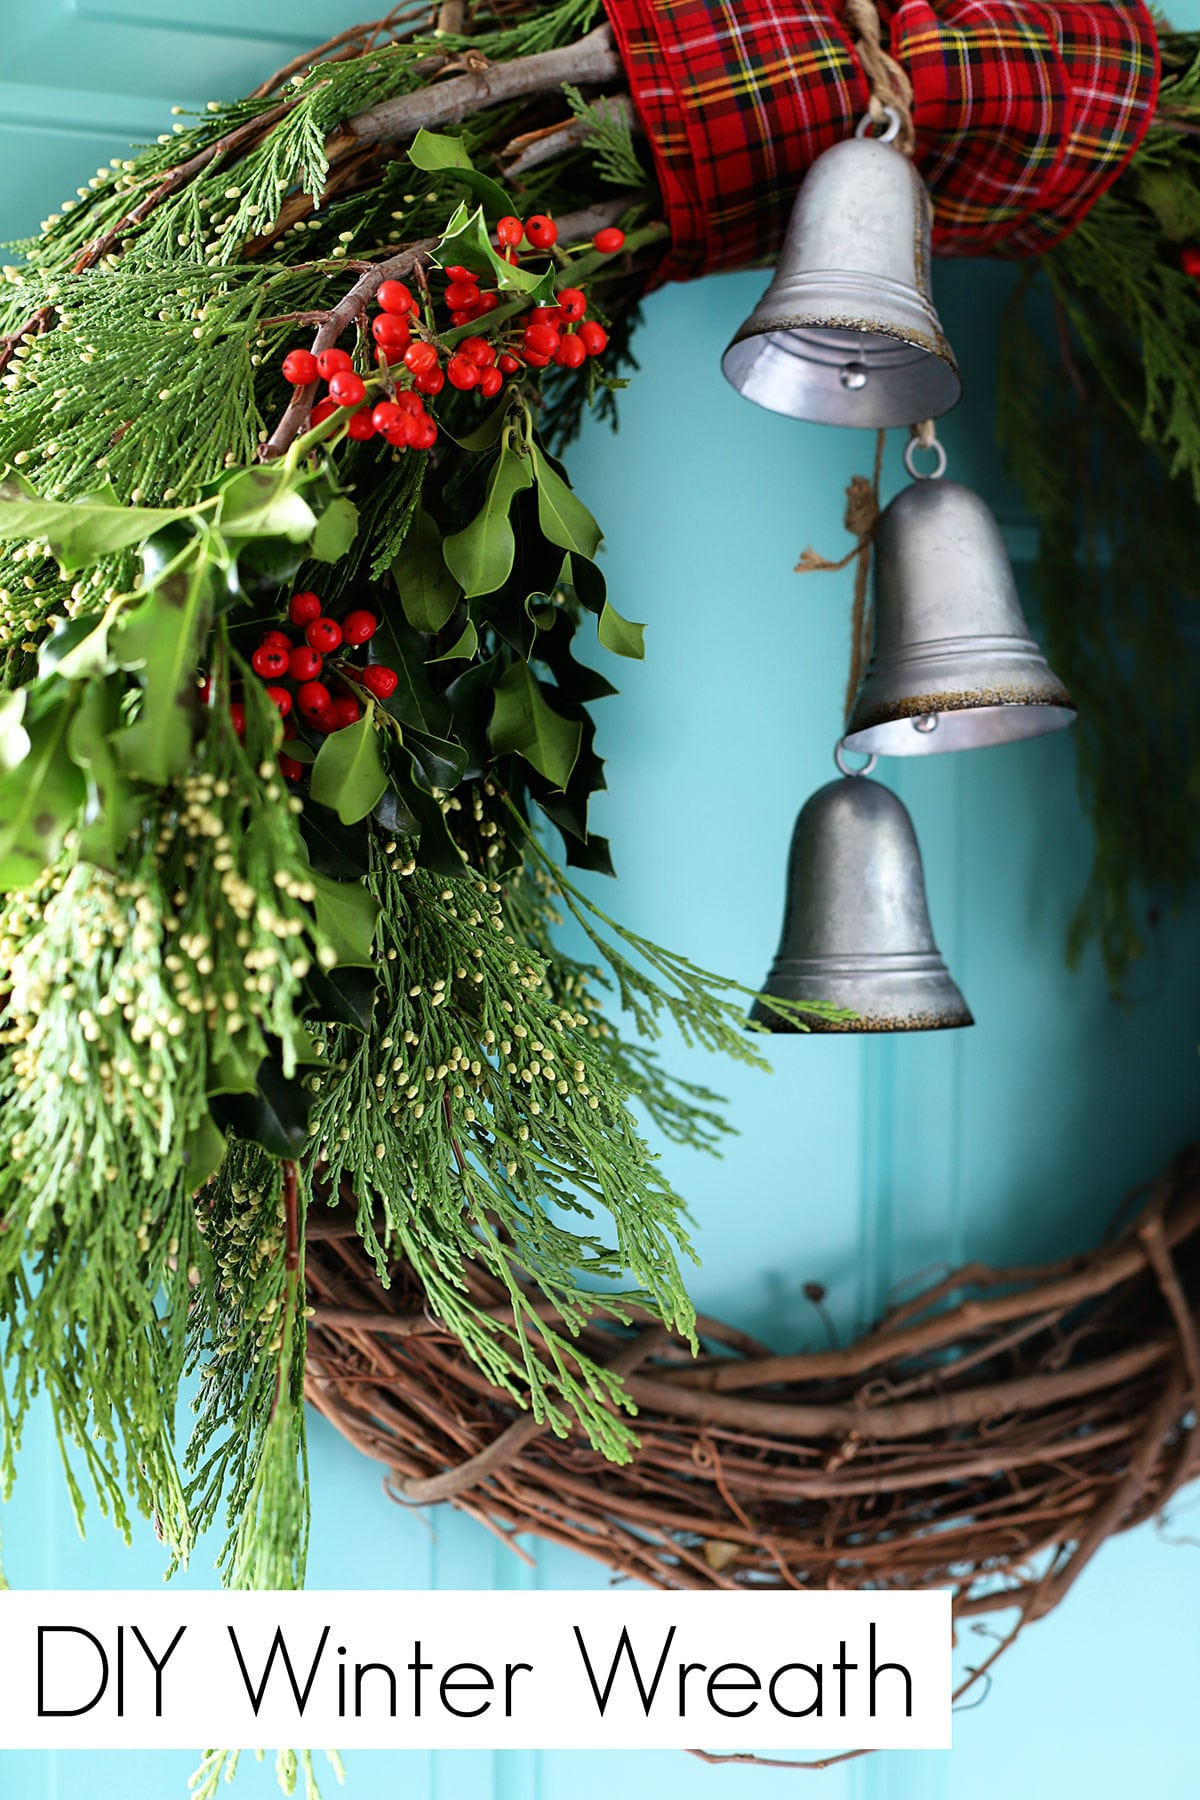 DIY winter wreath made with cedar boughs and holly